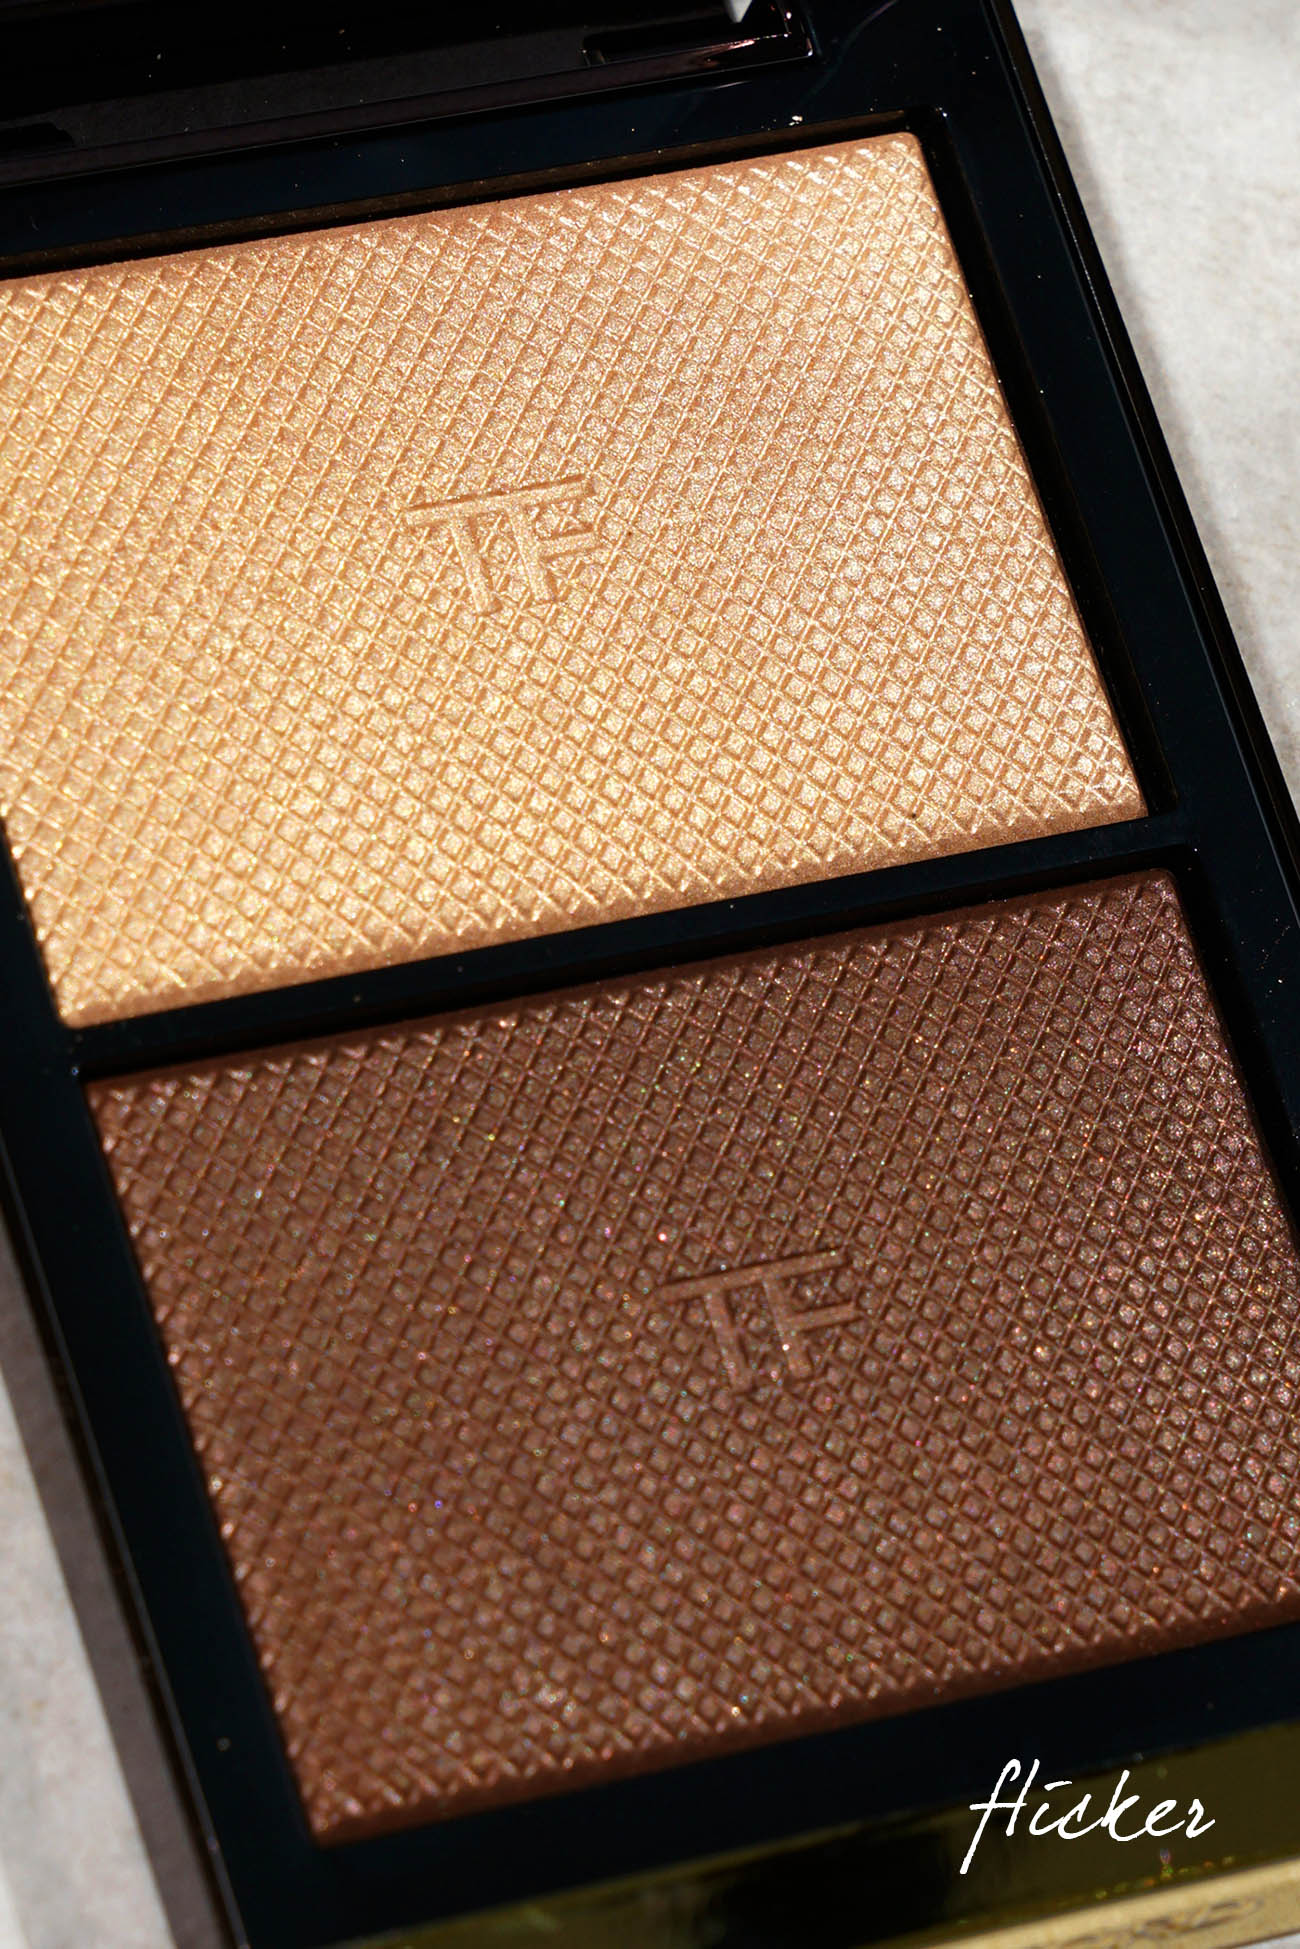 Tom Ford Skin Illuminating Duo in Flicker